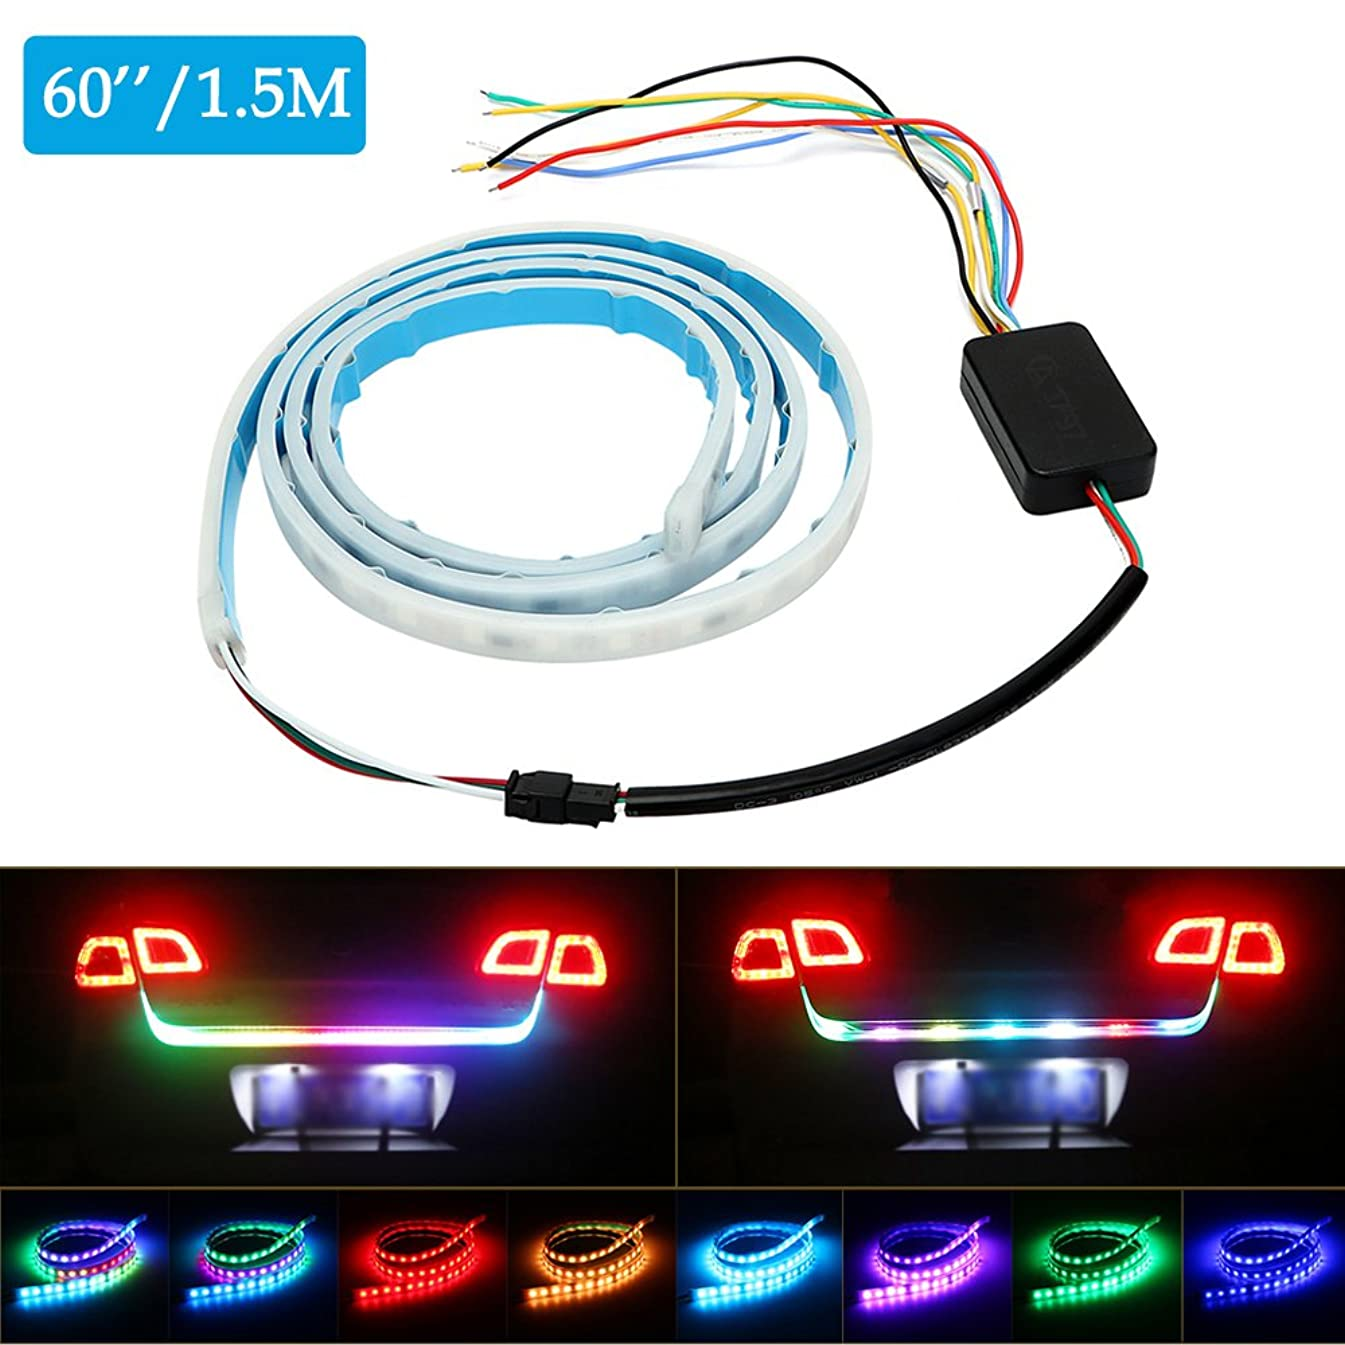 Tailgate Light Bar Car Strip Tail Flowing Turn Signal Warning Safety RGB LED Lamps Waterproof Universal Red Blue Modification Flash Proximity Anti Collision Dash Strobe 4.9ft 1pc【1797】